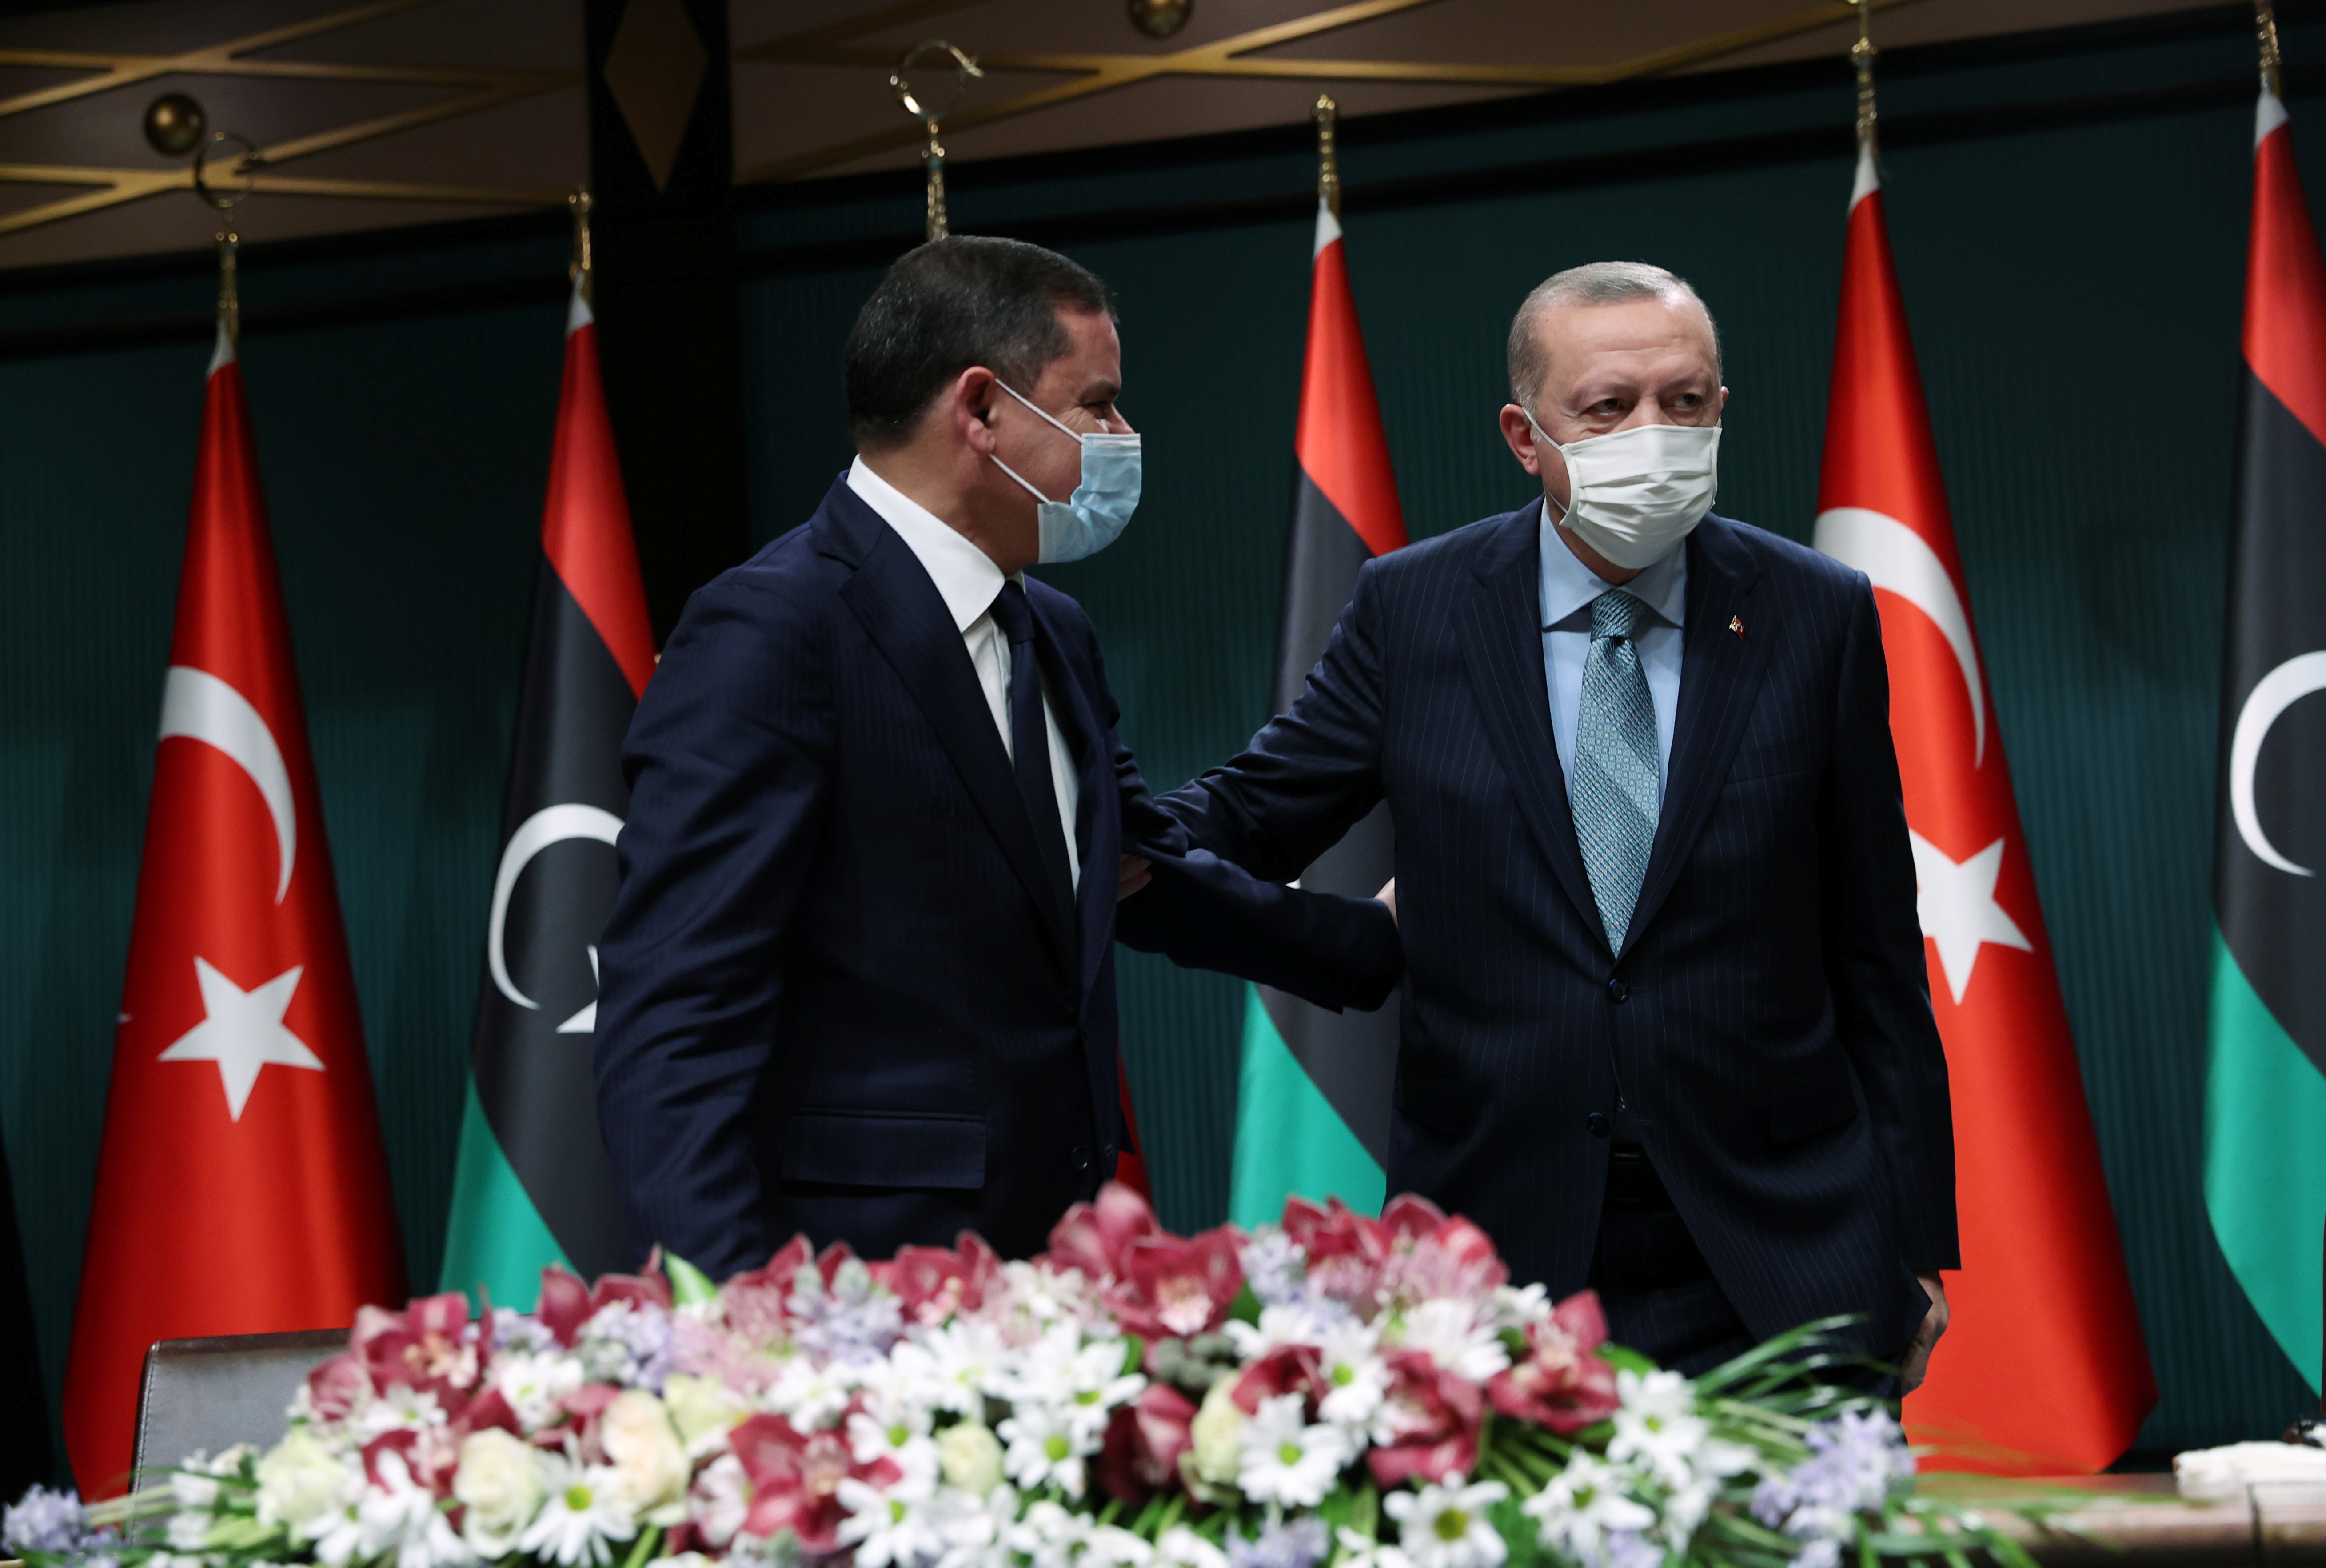 Turkish President Tayyip Erdogan and Libyan Prime Minister Abdulhamid Dbeibeh leave after a news conference in Ankara, Turkey April 12, 2021. Presidential Press Office/Handout via REUTERS